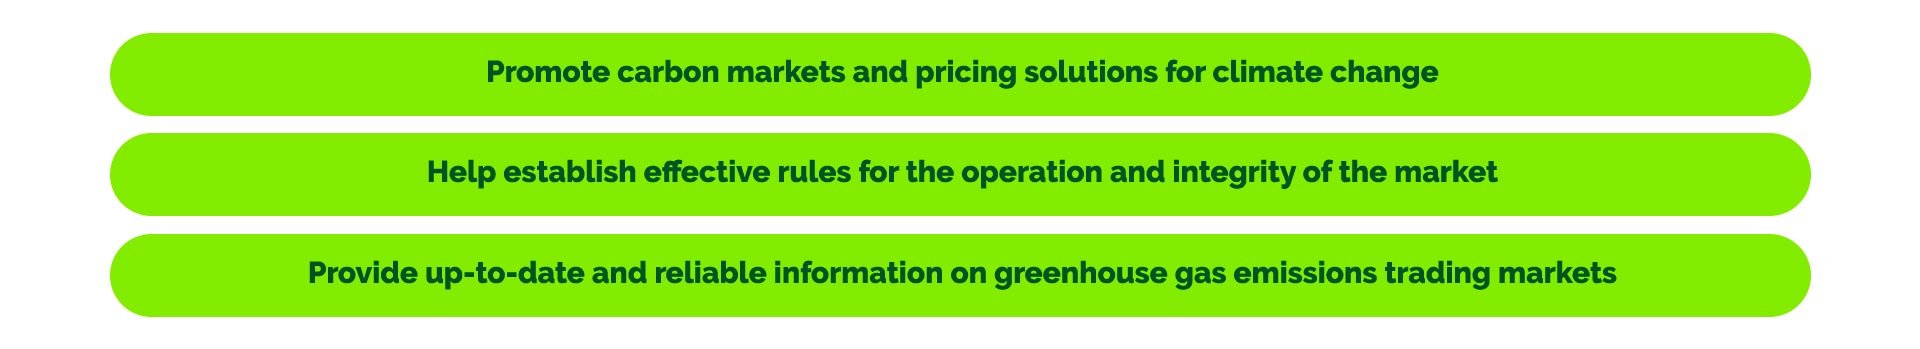 The main objectives of the association are: - promote carbon markets and pricing solutions for climate change; - help establish effective rules for the operation and integrity of the market; - provide up-to-date and reliable information on greenhouse gas emissions trading markets.